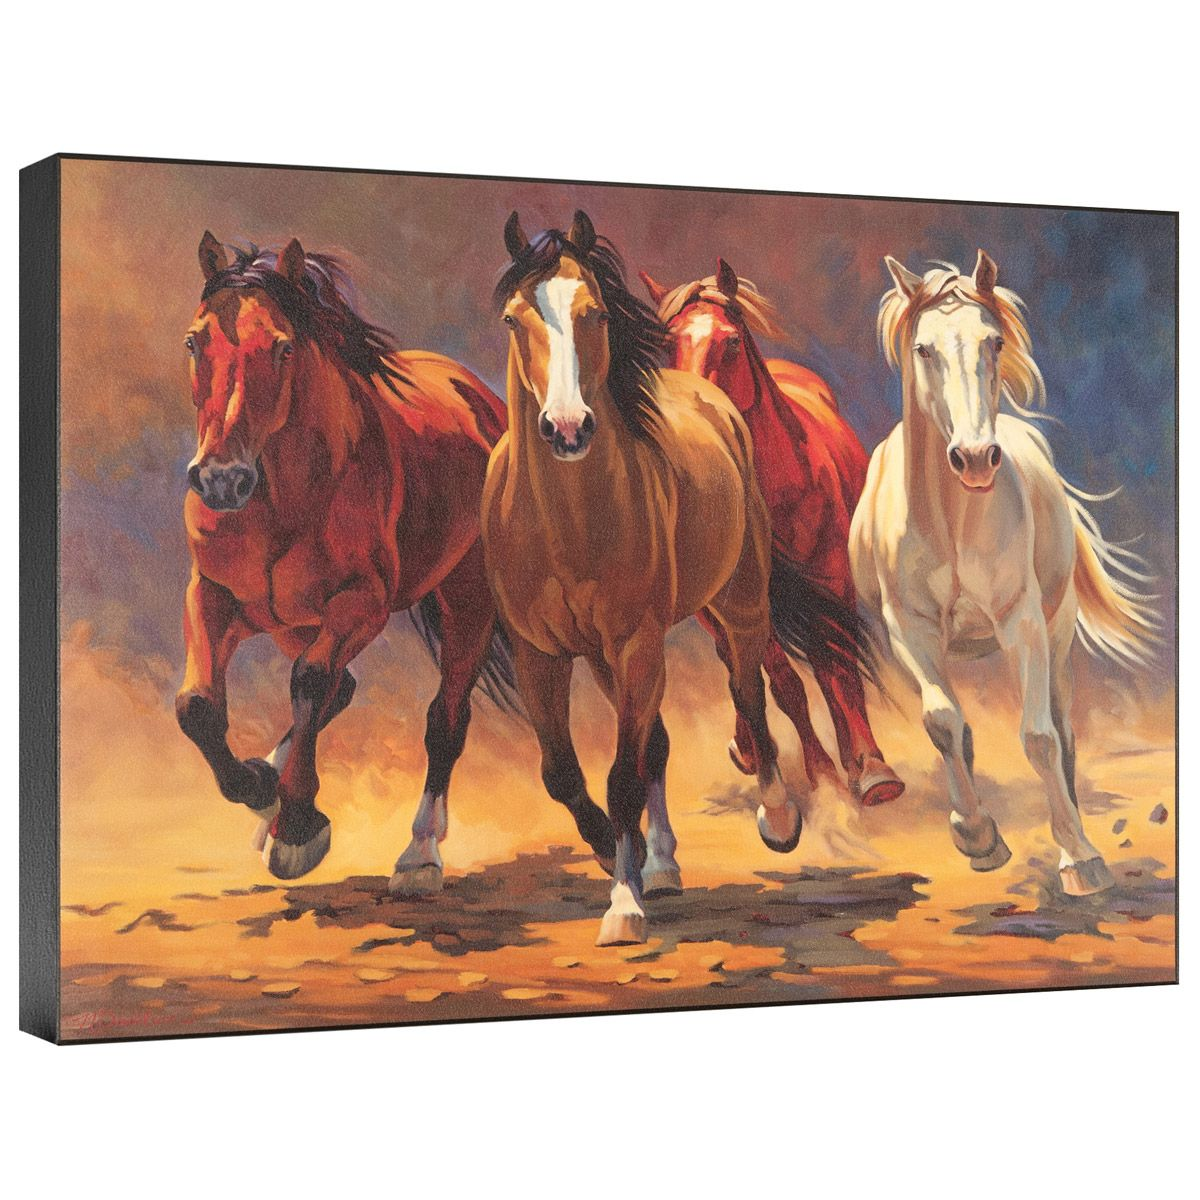 Hoofbeats and Heartbeats Gallery Wrapped Canvas